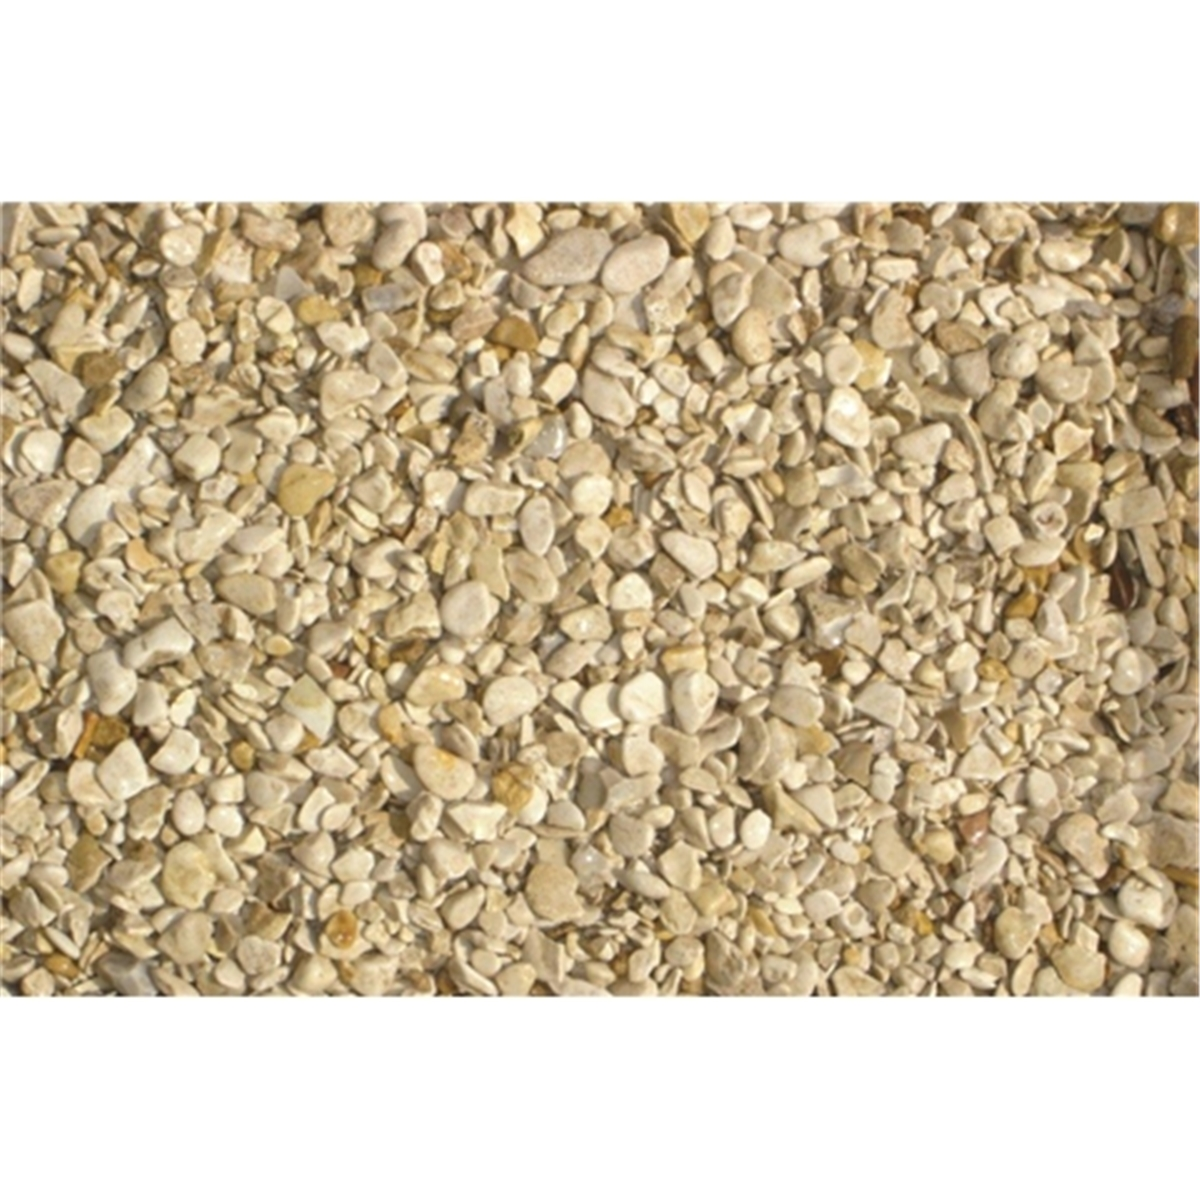 Bulk Bag 850kg Cotswold Brown Gravel